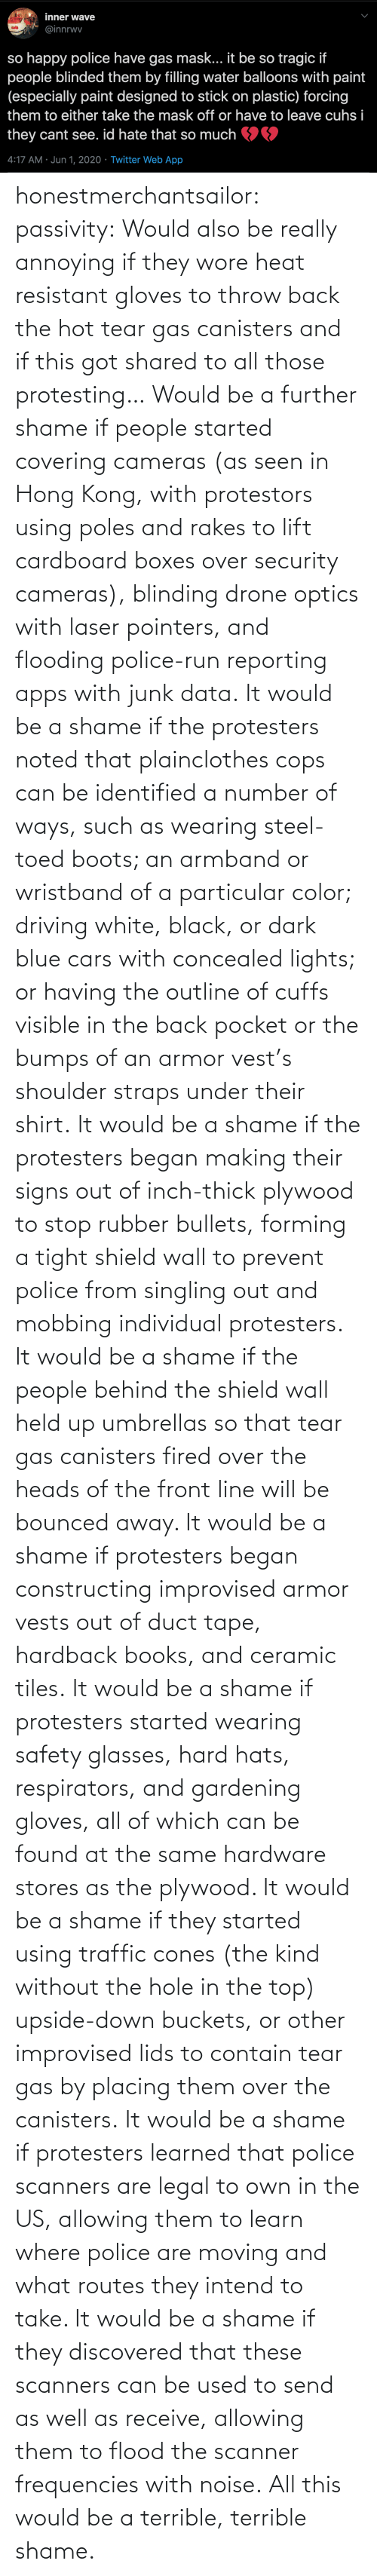 Learn: honestmerchantsailor:  passivity: Would also be really annoying if they wore heat resistant gloves to throw back the hot tear gas canisters and if this got shared to all those protesting… Would be a further shame if people started covering cameras (as seen in Hong Kong, with protestors using poles and rakes to lift cardboard boxes over security cameras), blinding drone optics with laser pointers, and flooding police-run reporting apps with junk data. It would be a shame if the protesters noted that plainclothes cops can be identified a number of ways, such as wearing steel-toed boots; an armband or wristband of a particular color; driving white, black, or dark blue cars with concealed lights; or having the outline of cuffs visible in the back pocket or the bumps of an armor vest's shoulder straps under their shirt. It would be a shame if the protesters began making their signs out of inch-thick plywood to stop rubber bullets, forming a tight shield wall to prevent police from singling out and mobbing individual protesters. It would be a shame if the people behind the shield wall held up umbrellas so that tear gas canisters fired over the heads of the front line will be bounced away. It would be a shame if protesters began constructing improvised armor vests out of duct tape, hardback books, and ceramic tiles. It would be a shame if protesters started wearing safety glasses, hard hats, respirators, and gardening gloves, all of which can be found at the same hardware stores as the plywood. It would be a shame if they started using traffic cones (the kind without the hole in the top) upside-down buckets, or other improvised lids to contain tear gas by placing them over the canisters. It would be a shame if protesters learned that police scanners are legal to own in the US, allowing them to learn where police are moving and what routes they intend to take. It would be a shame if they discovered that these scanners can be used to send as well as receive, allowing them to flood the scanner frequencies with noise. All this would be a terrible, terrible shame.